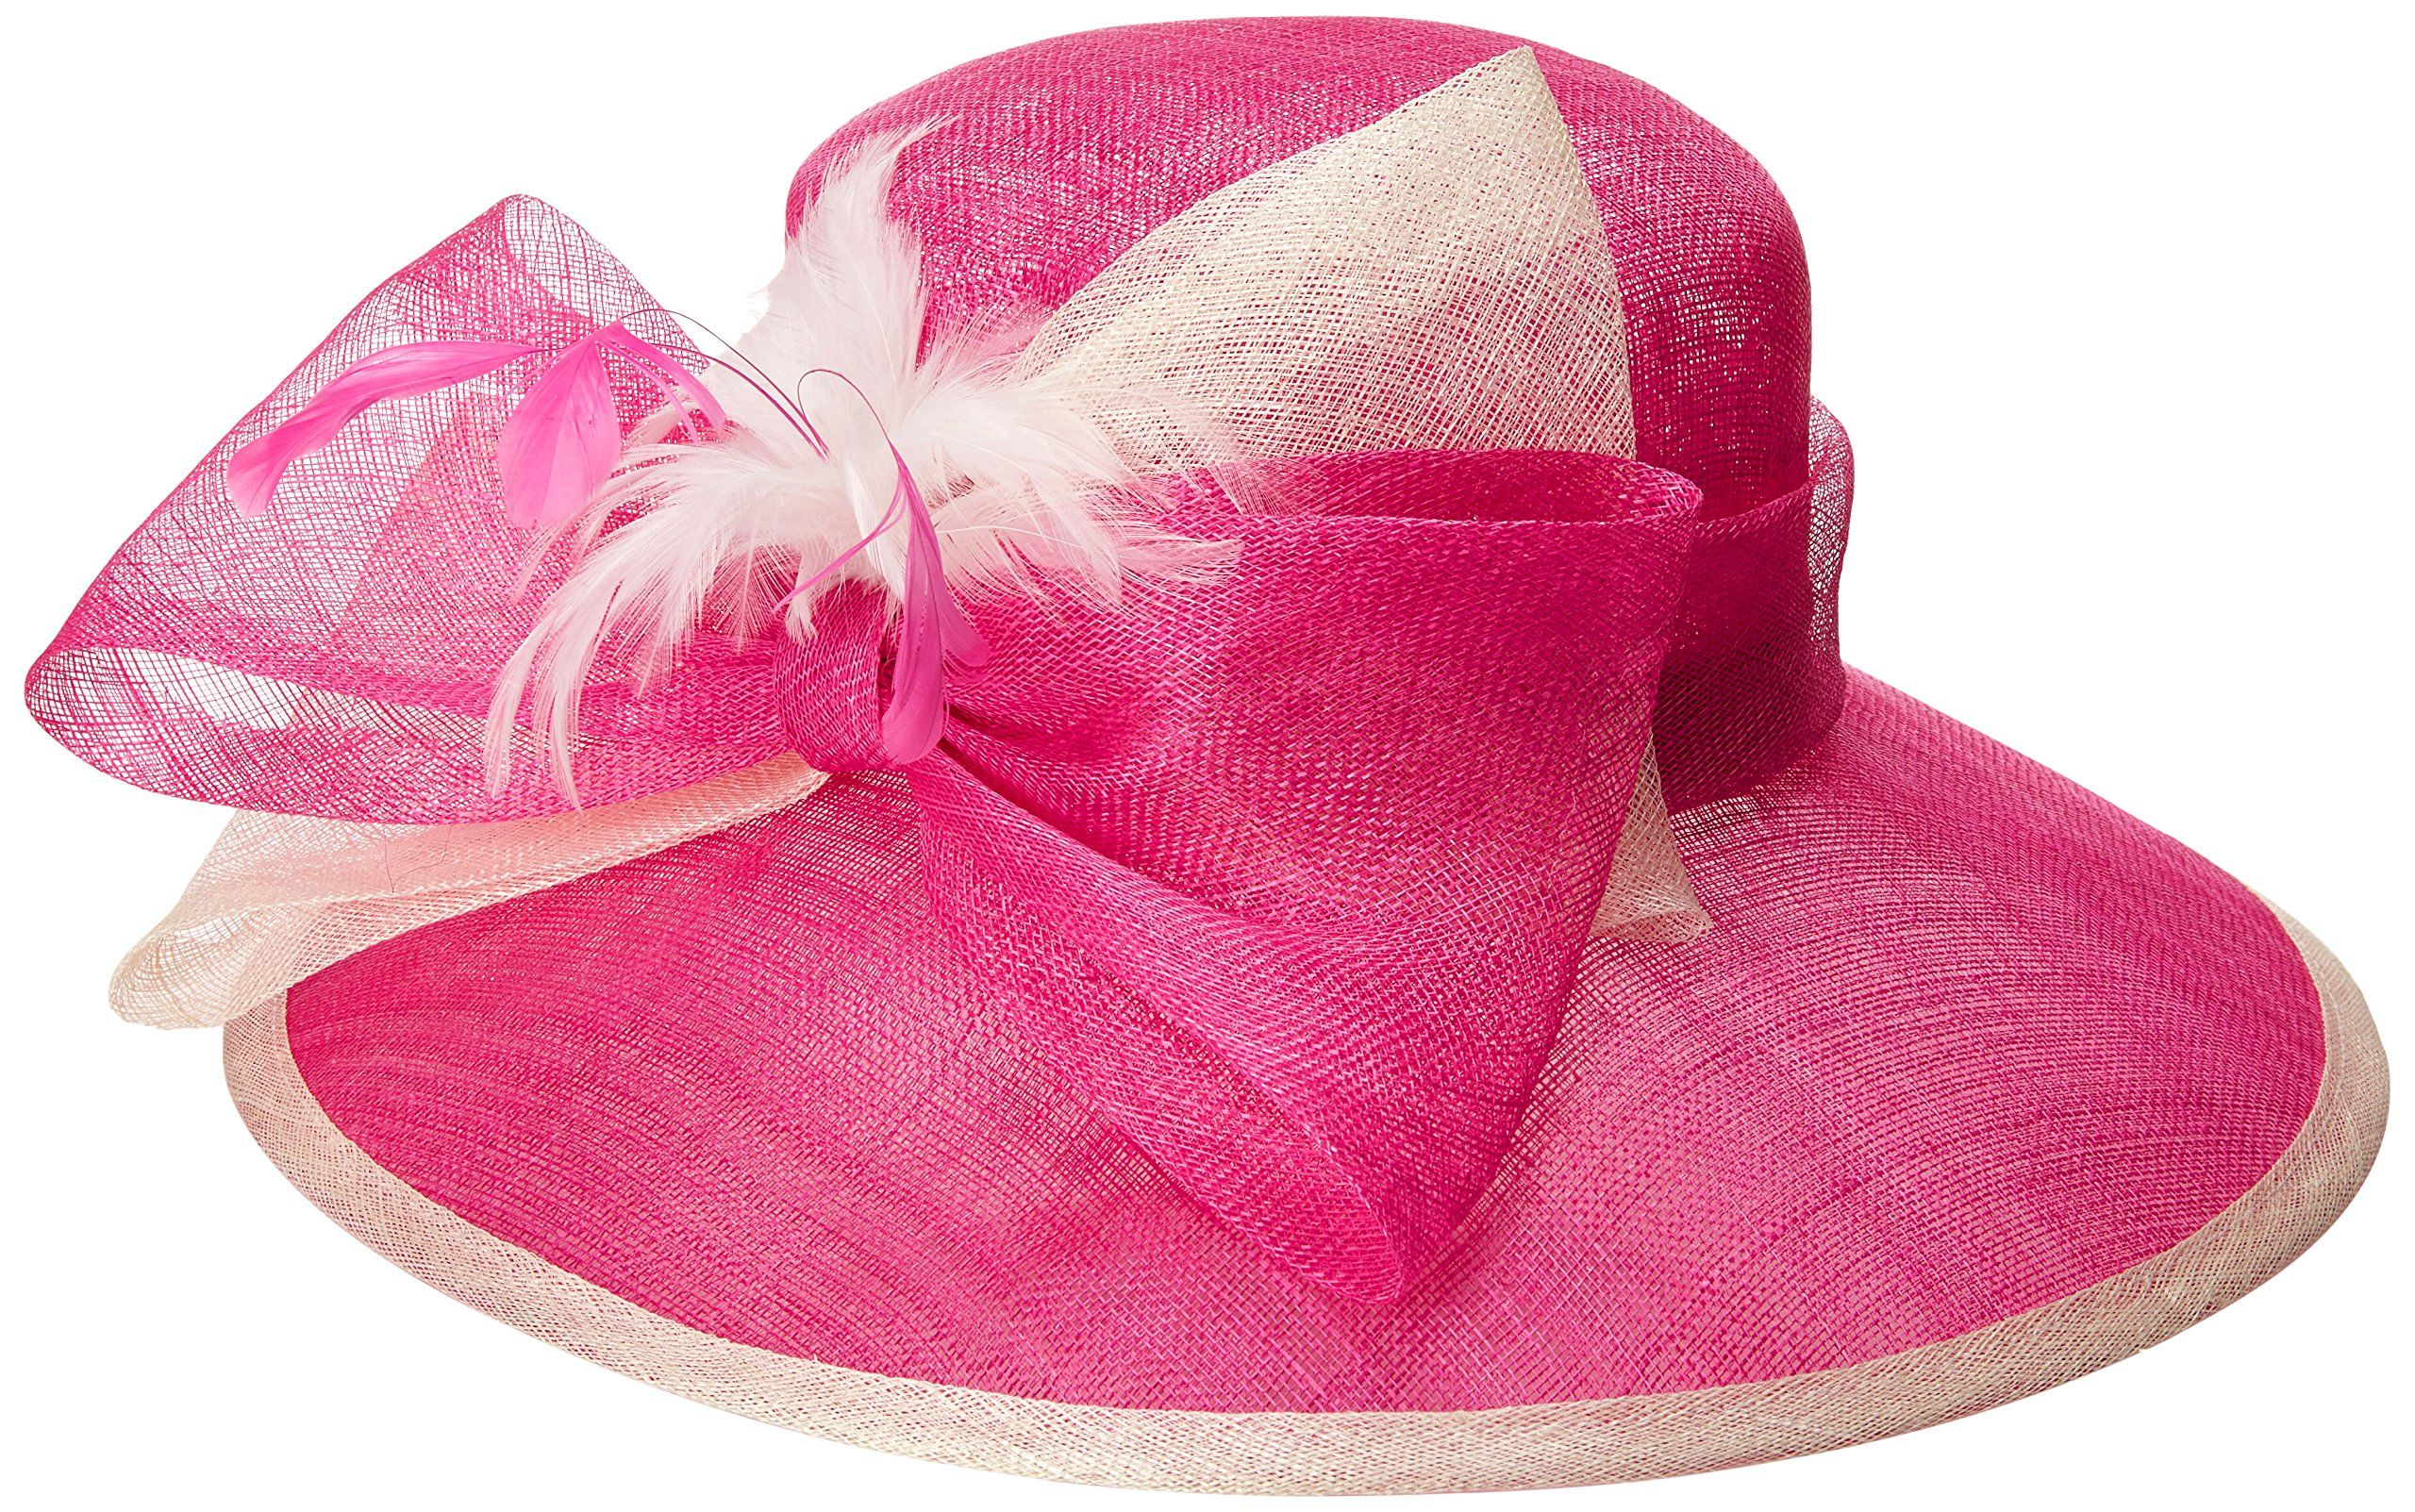 7be39d88 Scala Women's Large Sinamay Brimmed Derby Hat with Bow and Feather Trim,  Fuchsia, One Size at Amazon Women's Clothing store: